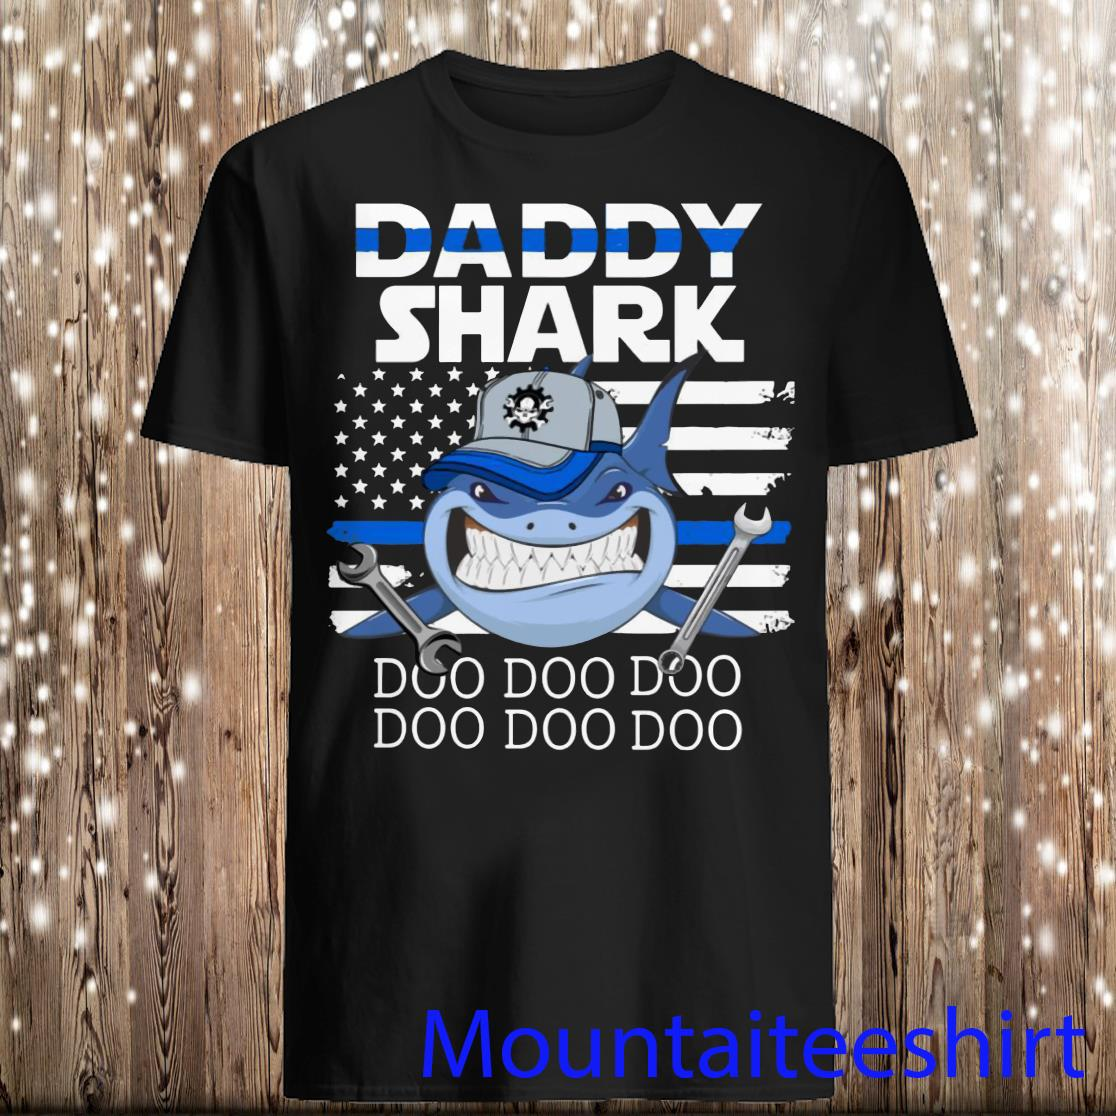 Mechanic Daddy Shark Doo Doo Doo Shirt